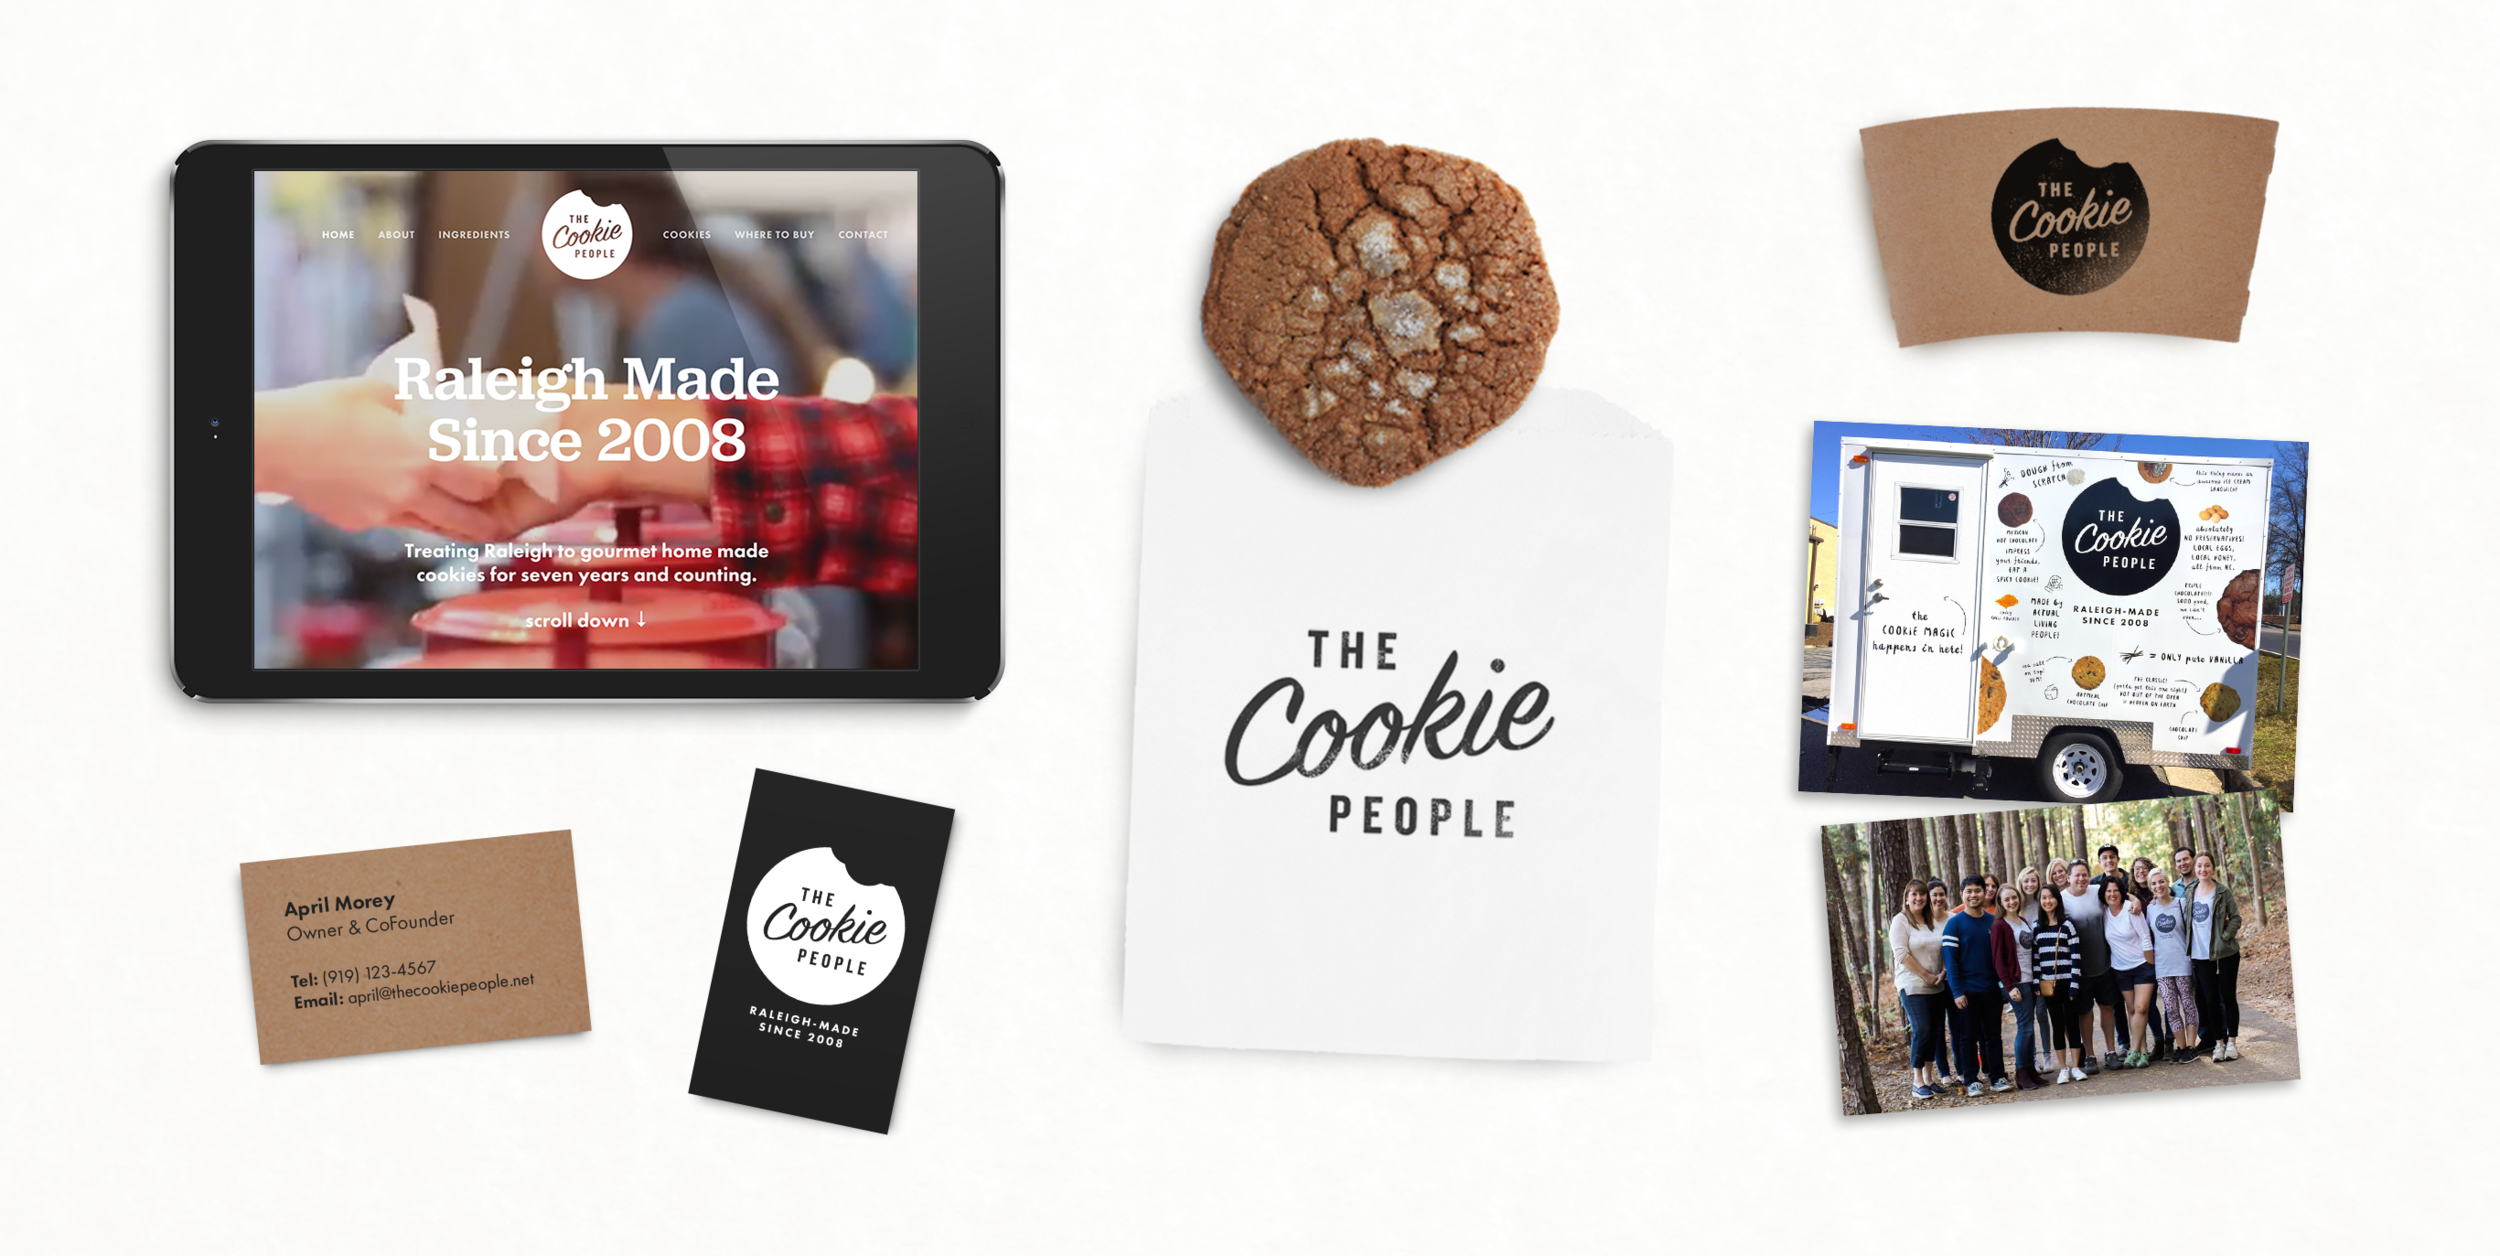 The Cookie People — Ben Markoch